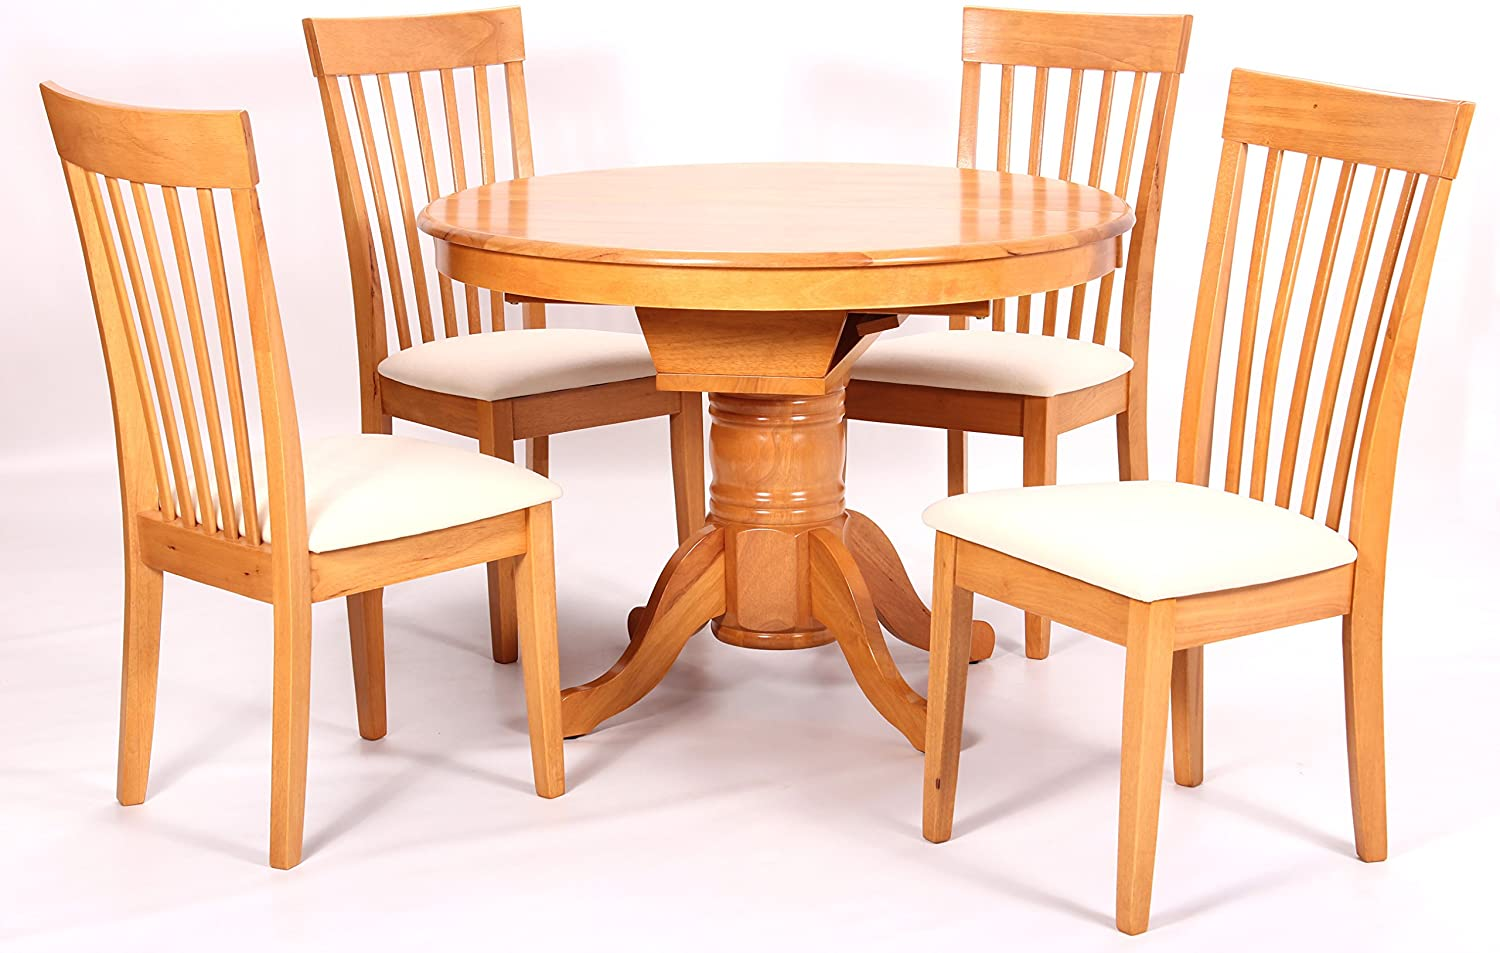 4 Chairs Leicester Oval Round Extending Pedestal Dining Table Greenheart Furniture Uk Ireland Home Kitchen Dining Room Sets